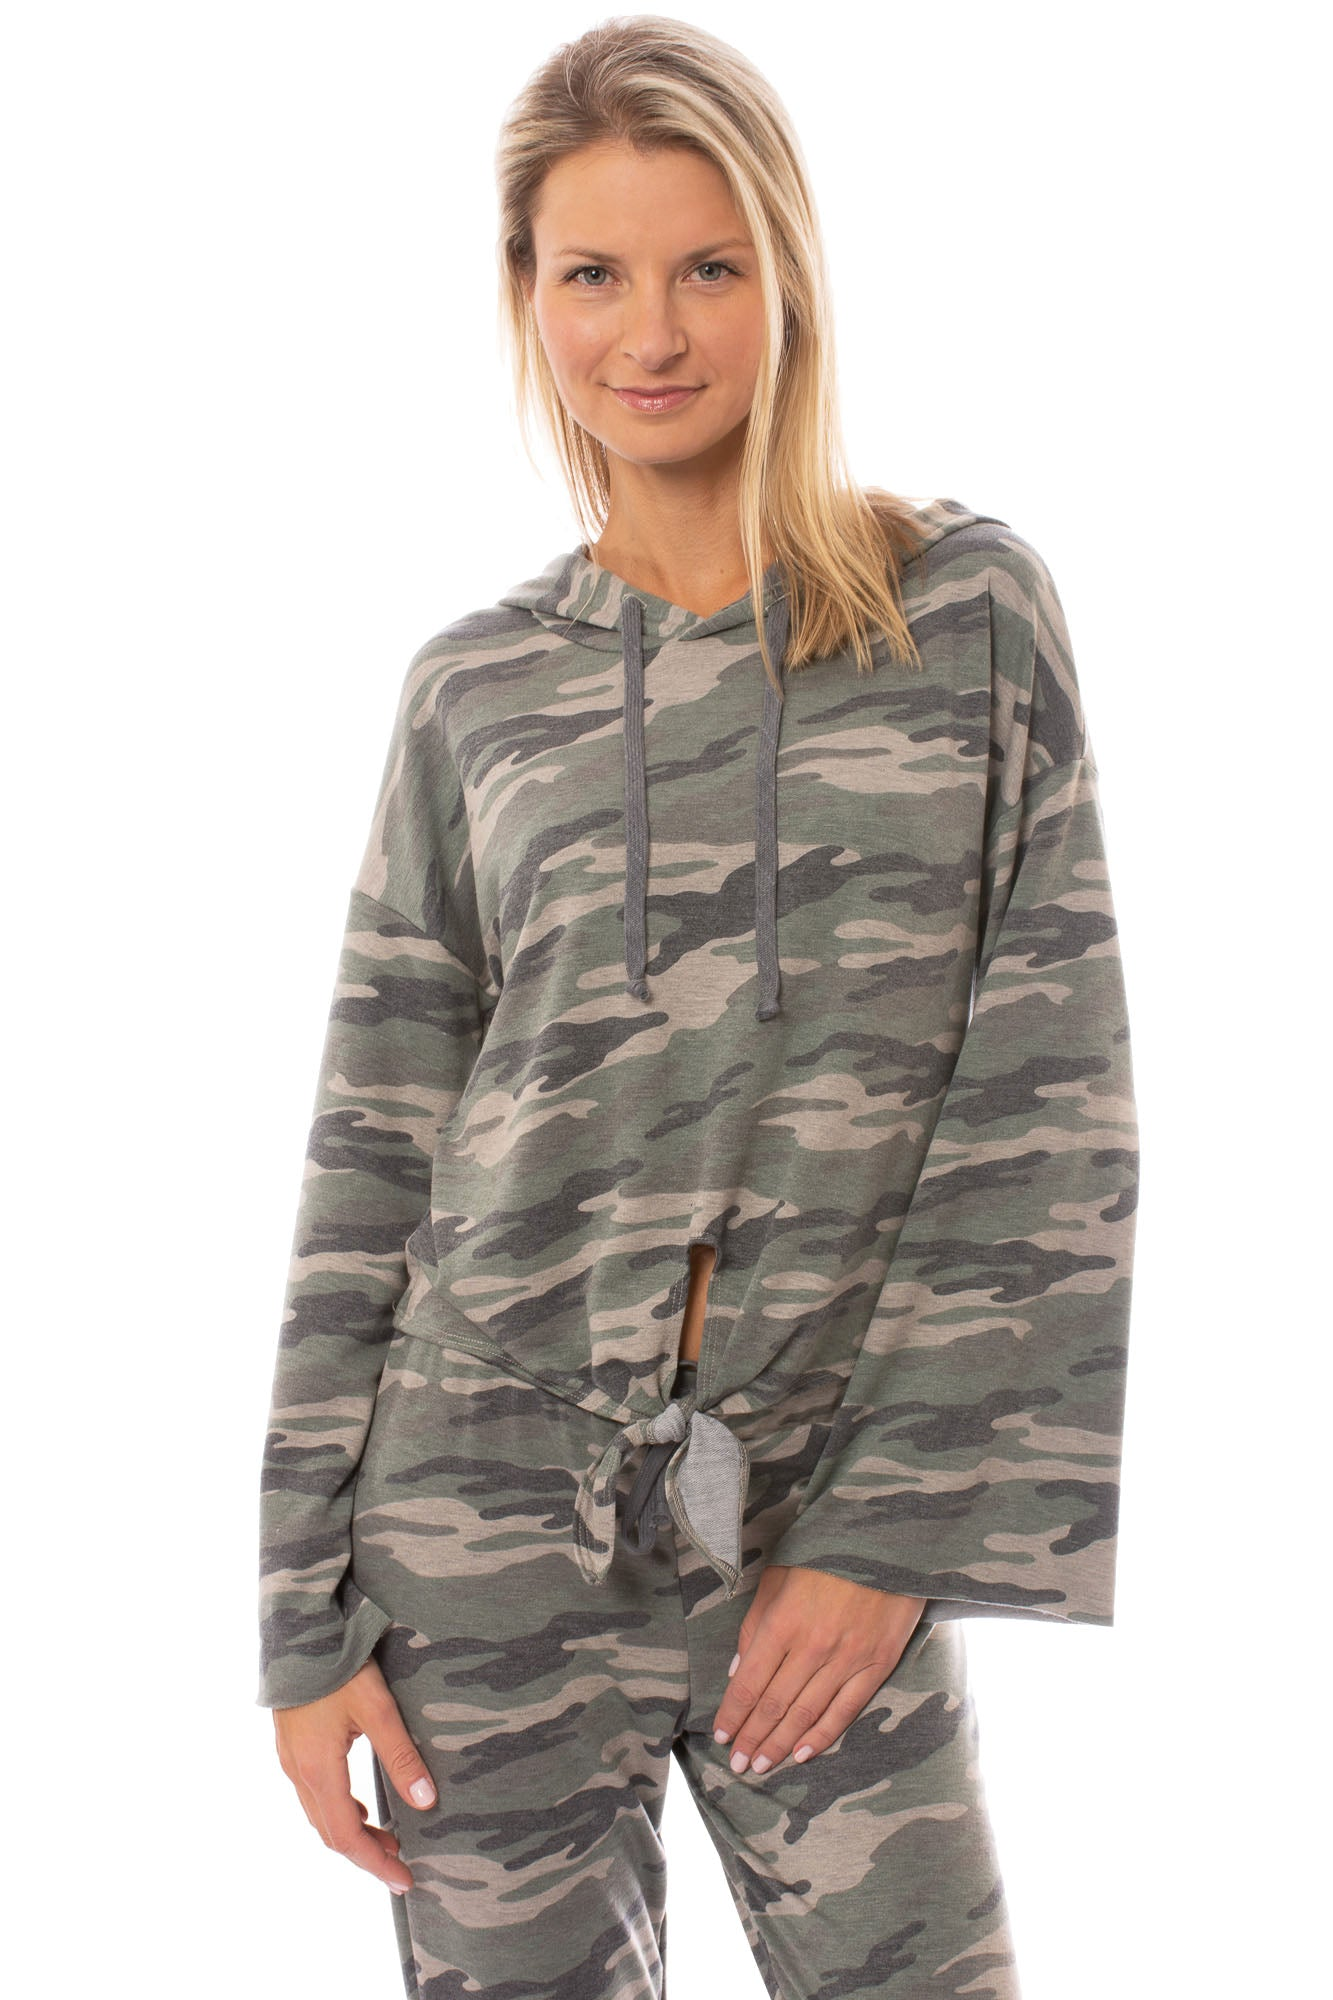 LA Made - Celeste Camo Hoodie (CAMF1003, Light Green Camo)